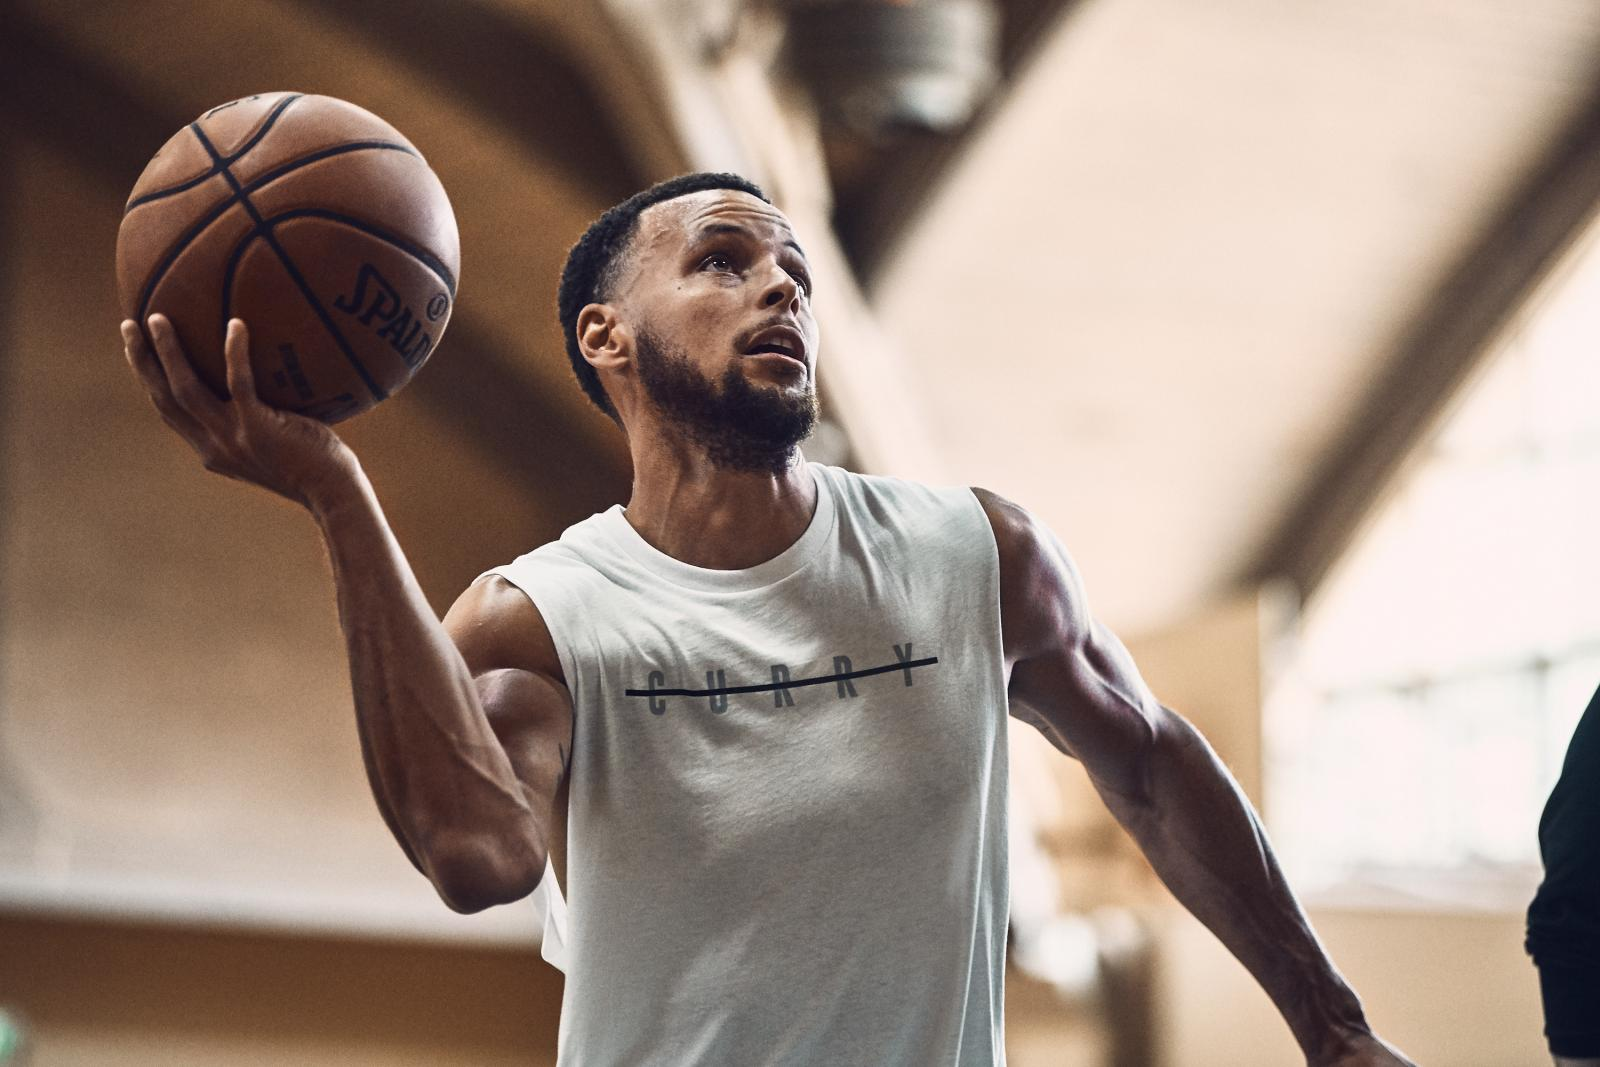 1680a11b6f32 The Curry 6 Underrated colorway is a celebration of the nights Stephen  donned the throwback Warriors colors during his rookie season - right  before he took ...